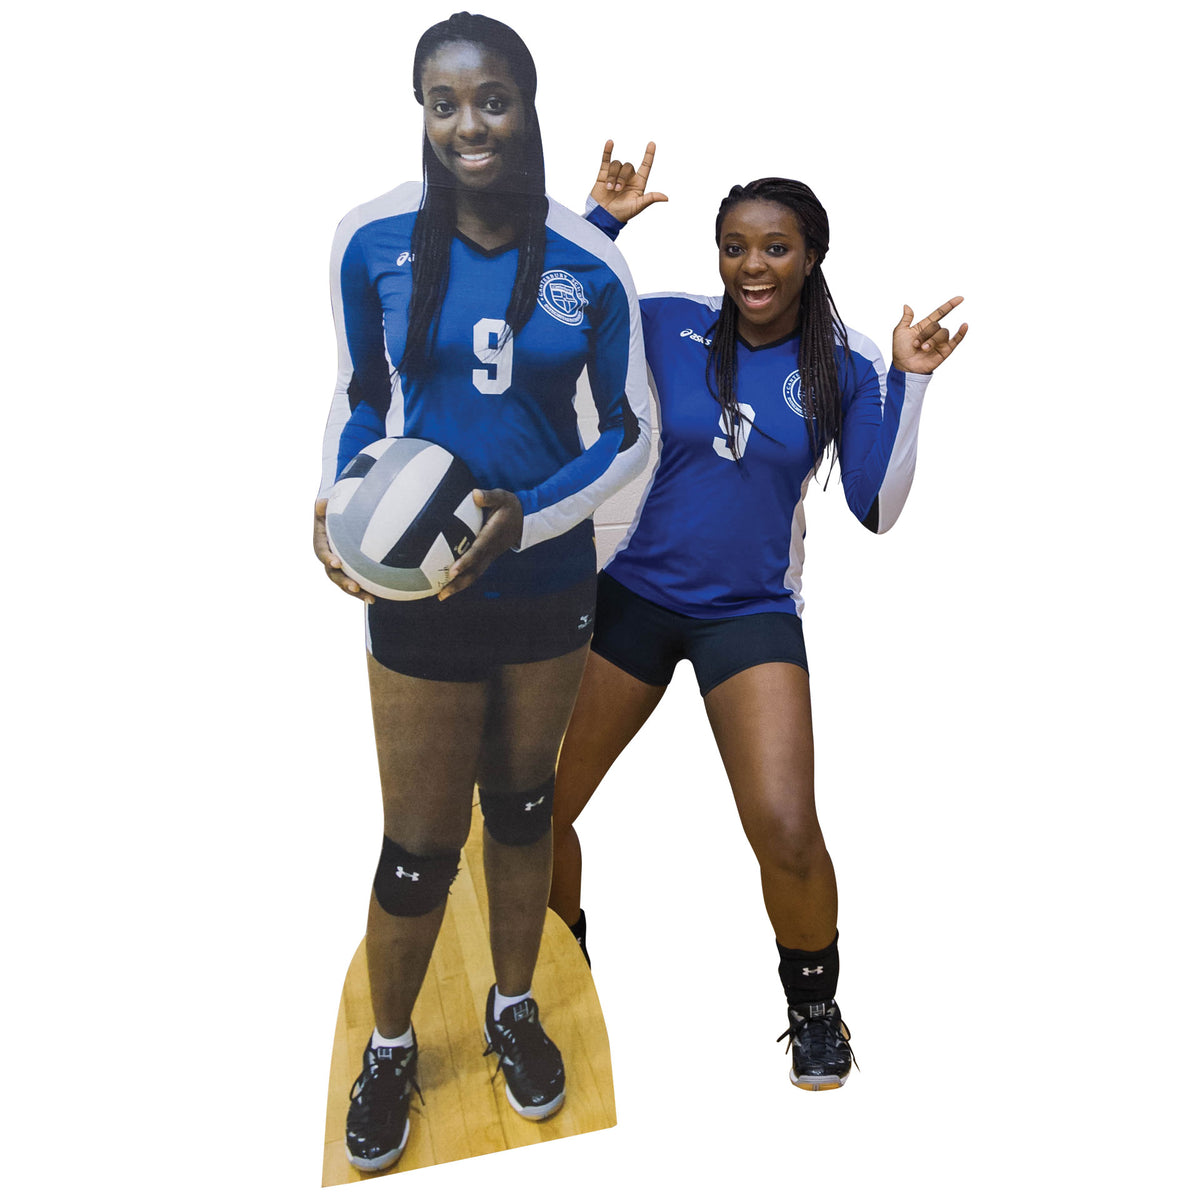 18 in. to 9 ft. Volleyball Player Select-a-Size Photo Standee